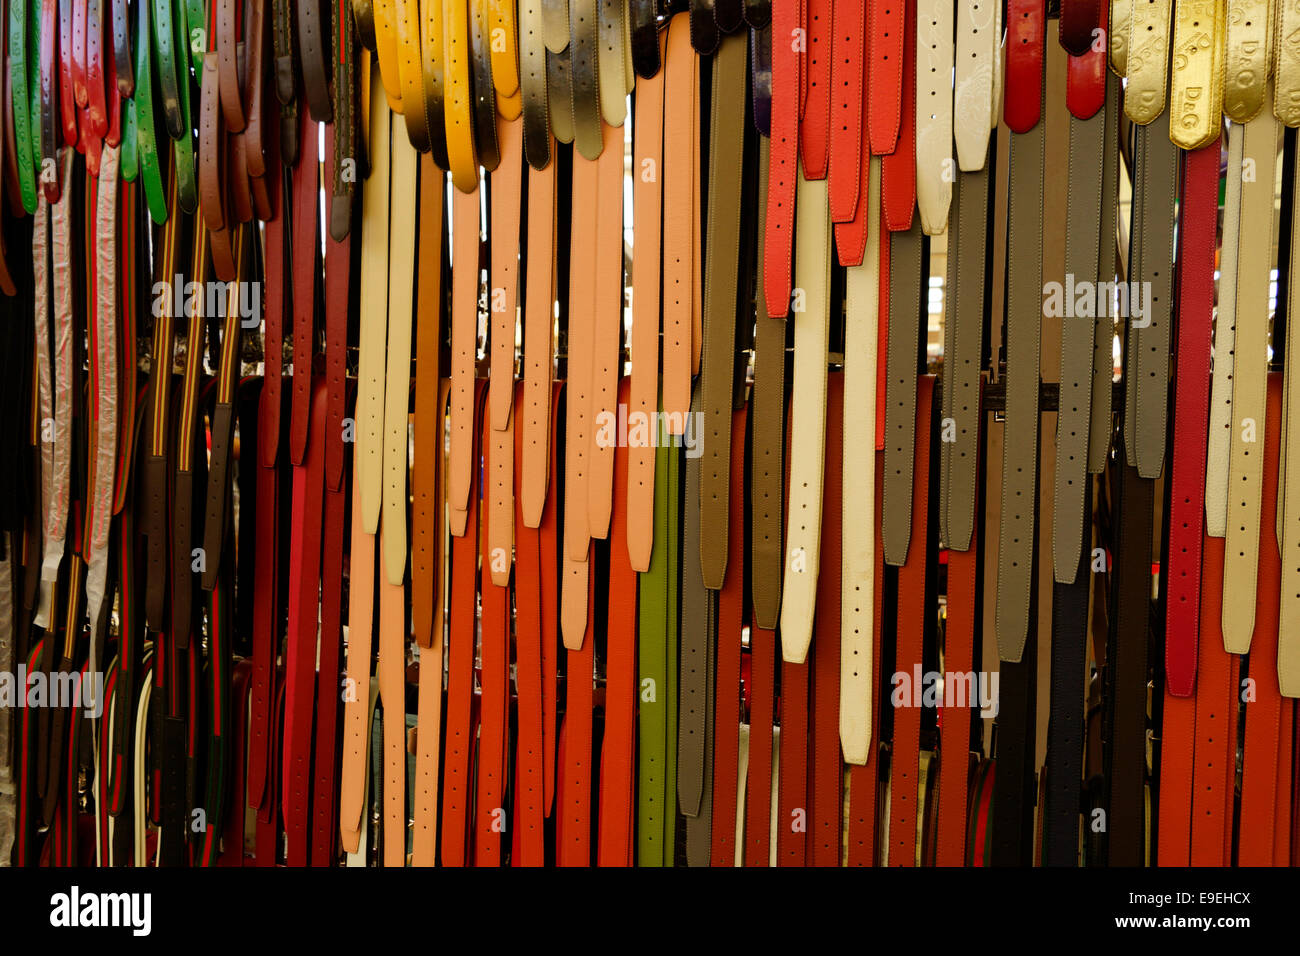 Belts of many colours and sizes - Stock Image